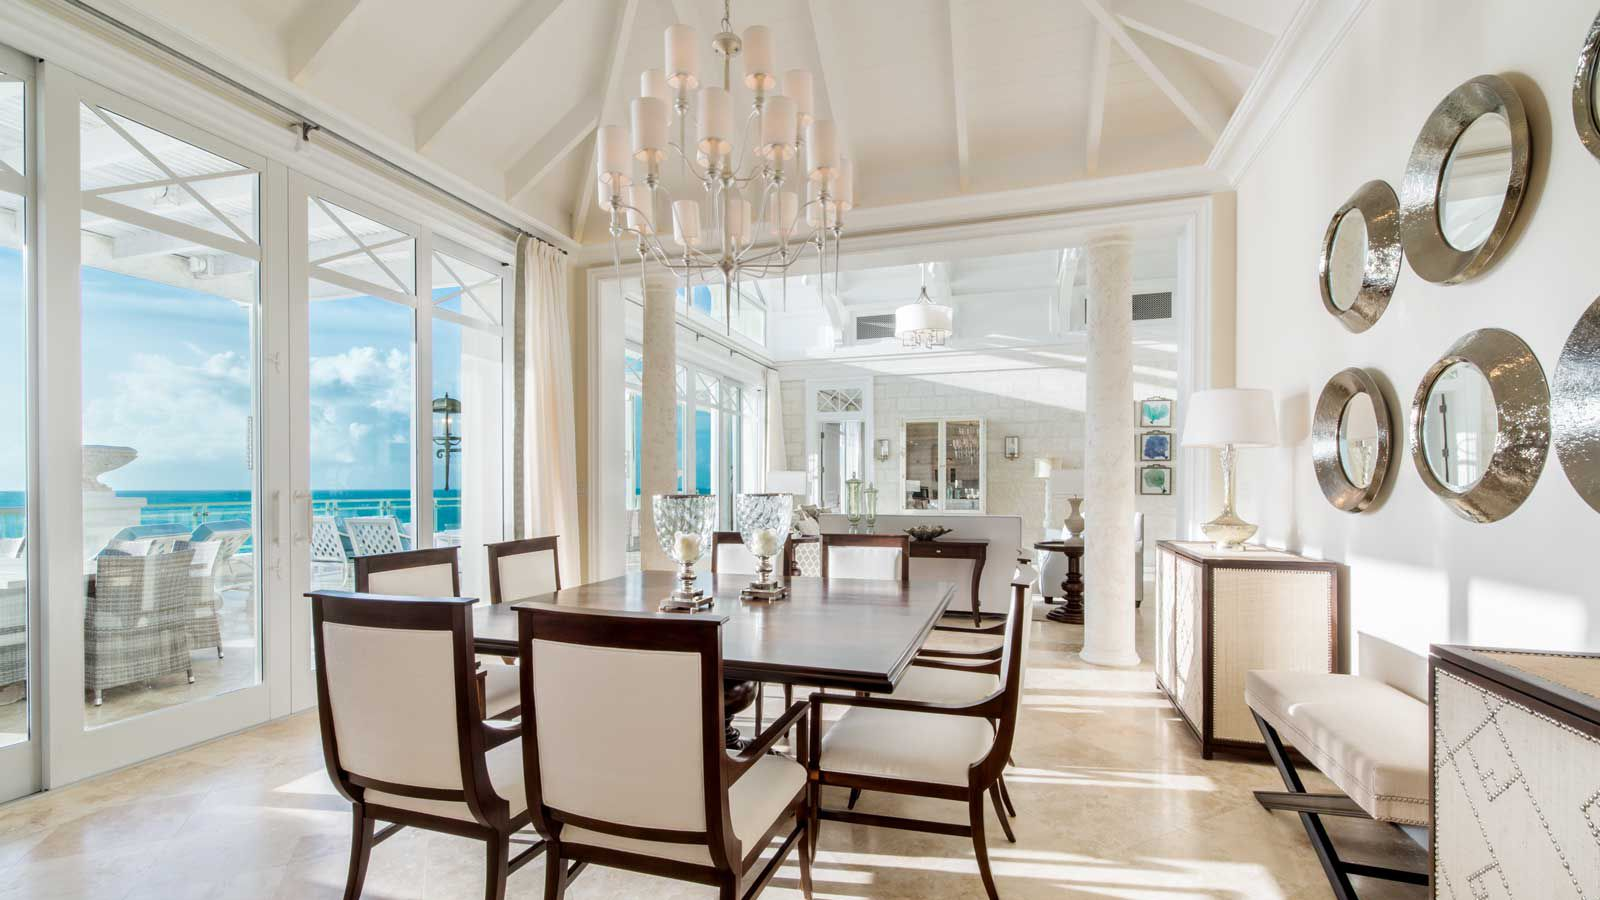 The almost all-white dining space in a suite at The Shore Club in the Turks and Caicos, with views to the ocean